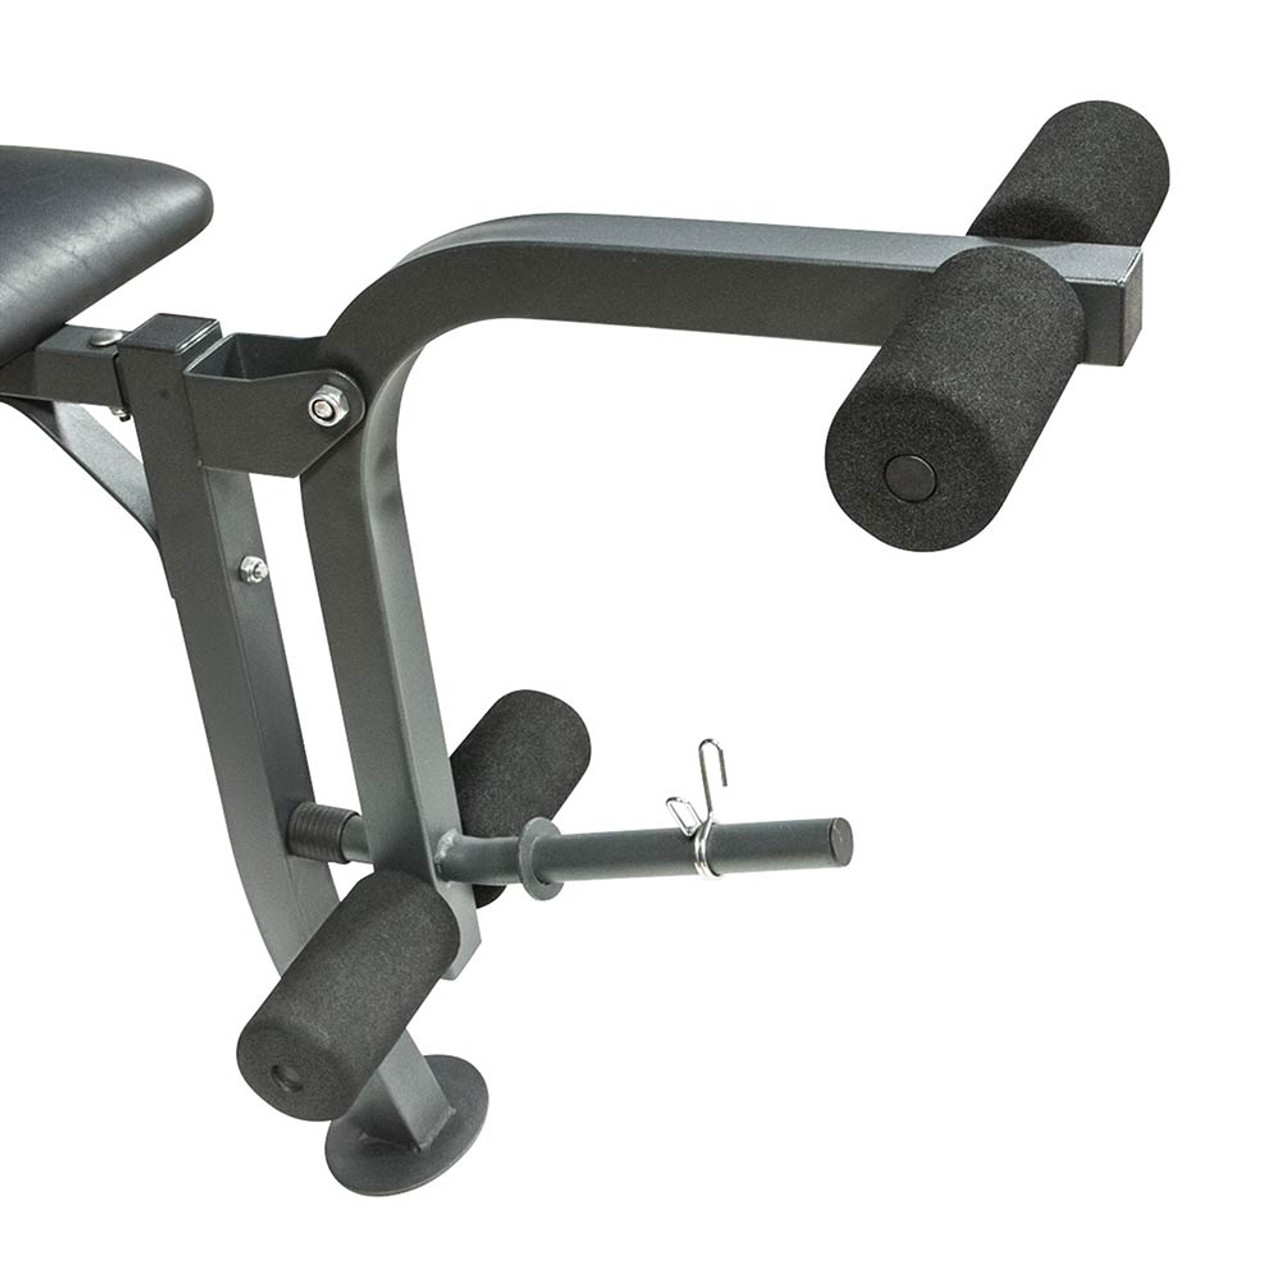 The Marcy Weight Bench 80lb Weight Set MD-2080 includes a leg developer to deliver a full body workout